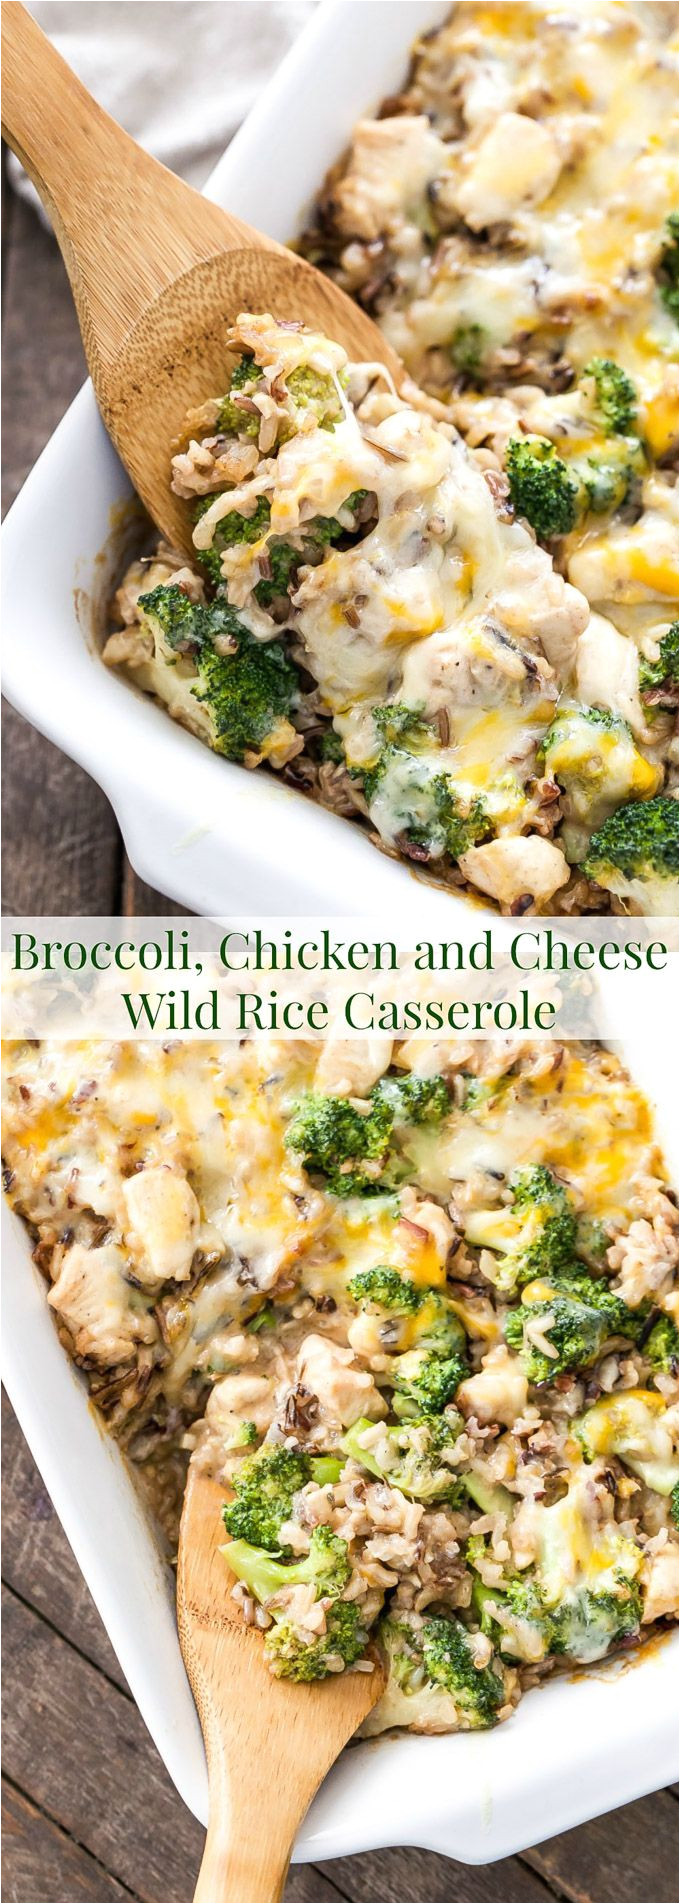 this broccoli chicken and cheese wild rice casserole is a healthy and delicious dinner that